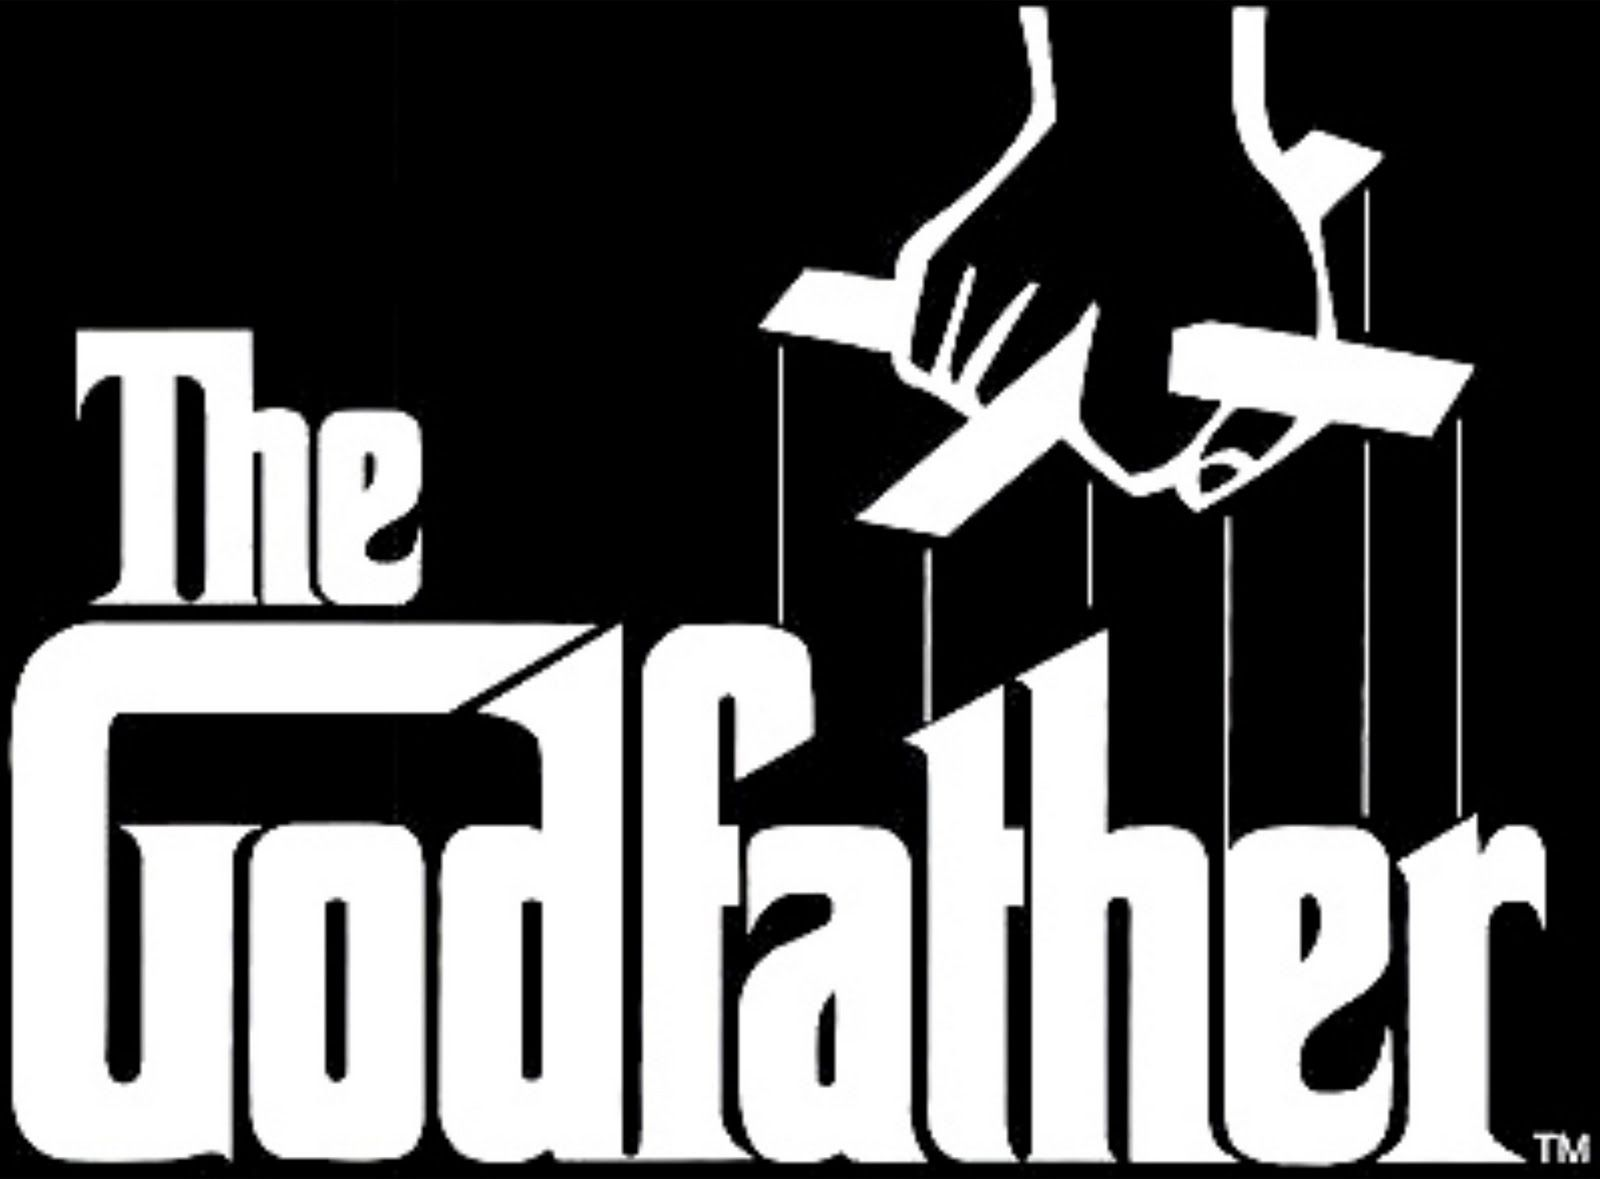 Godfather Jpg 1600 1179 The Godfather Good Movies Famous Movie Posters